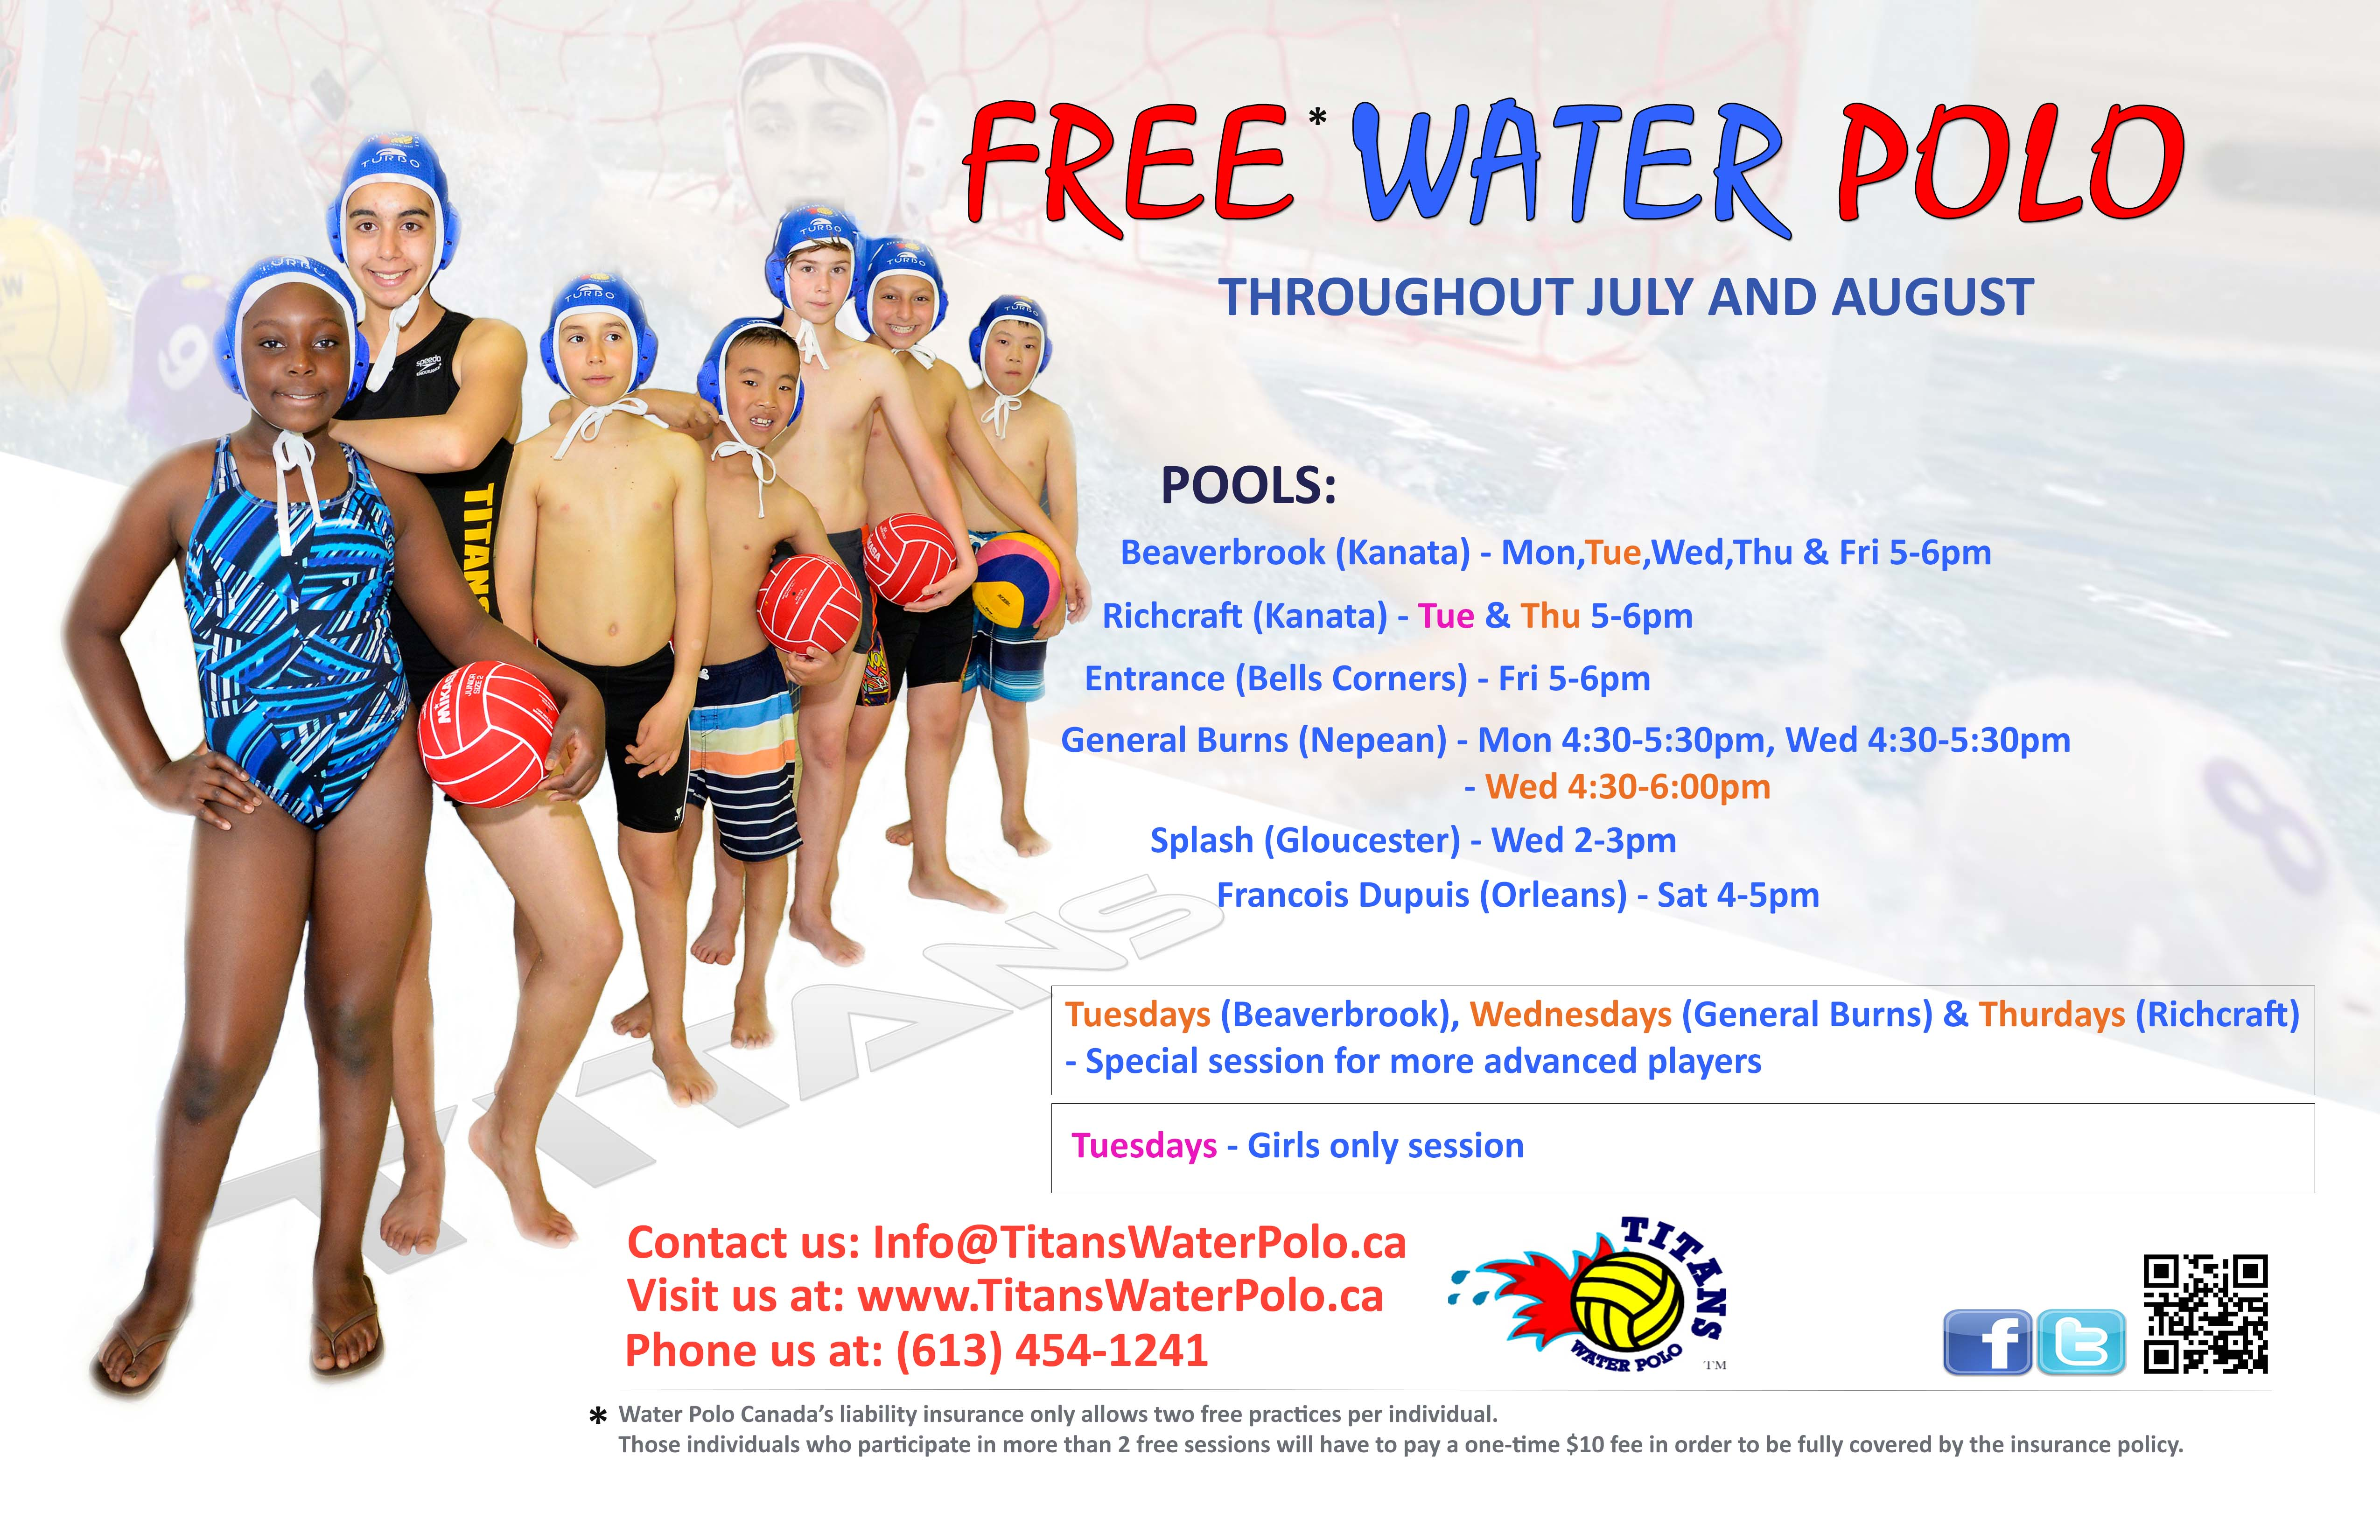 FREE Water Polo throughout July and August